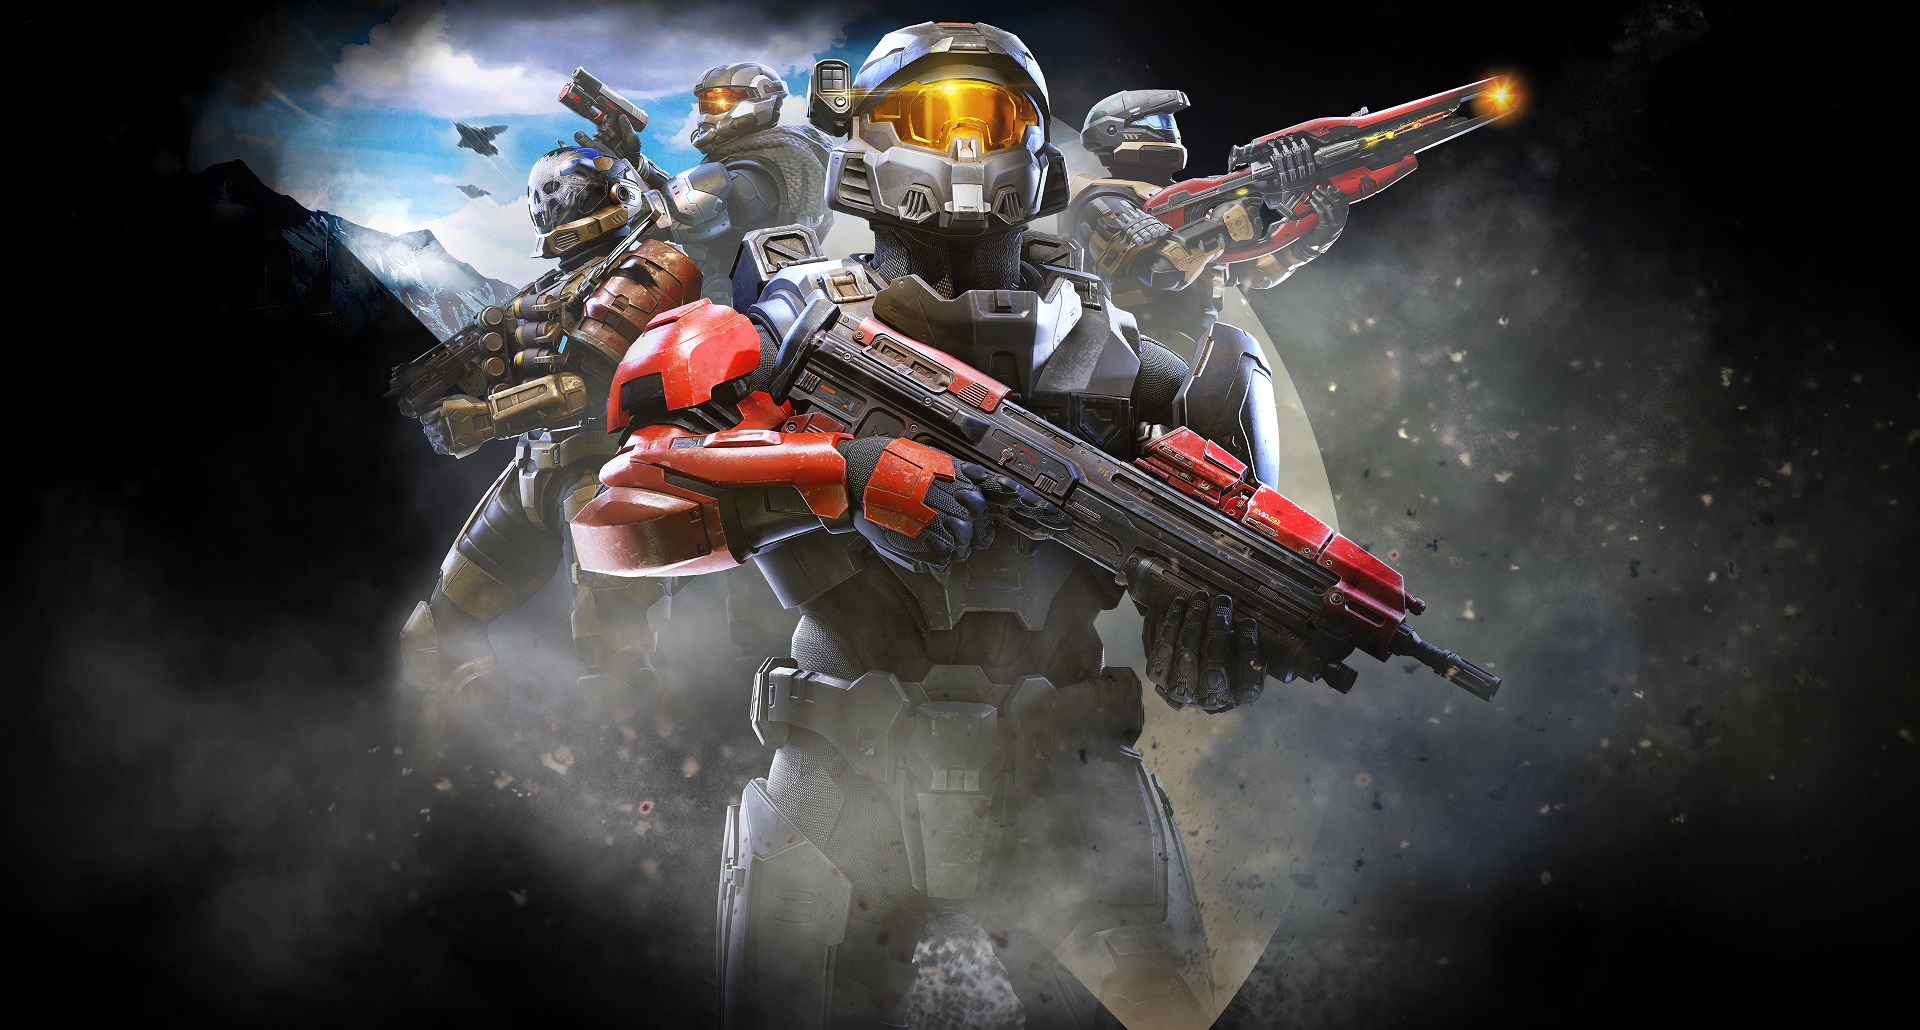 Microsoft releases new image from Halo Infinite